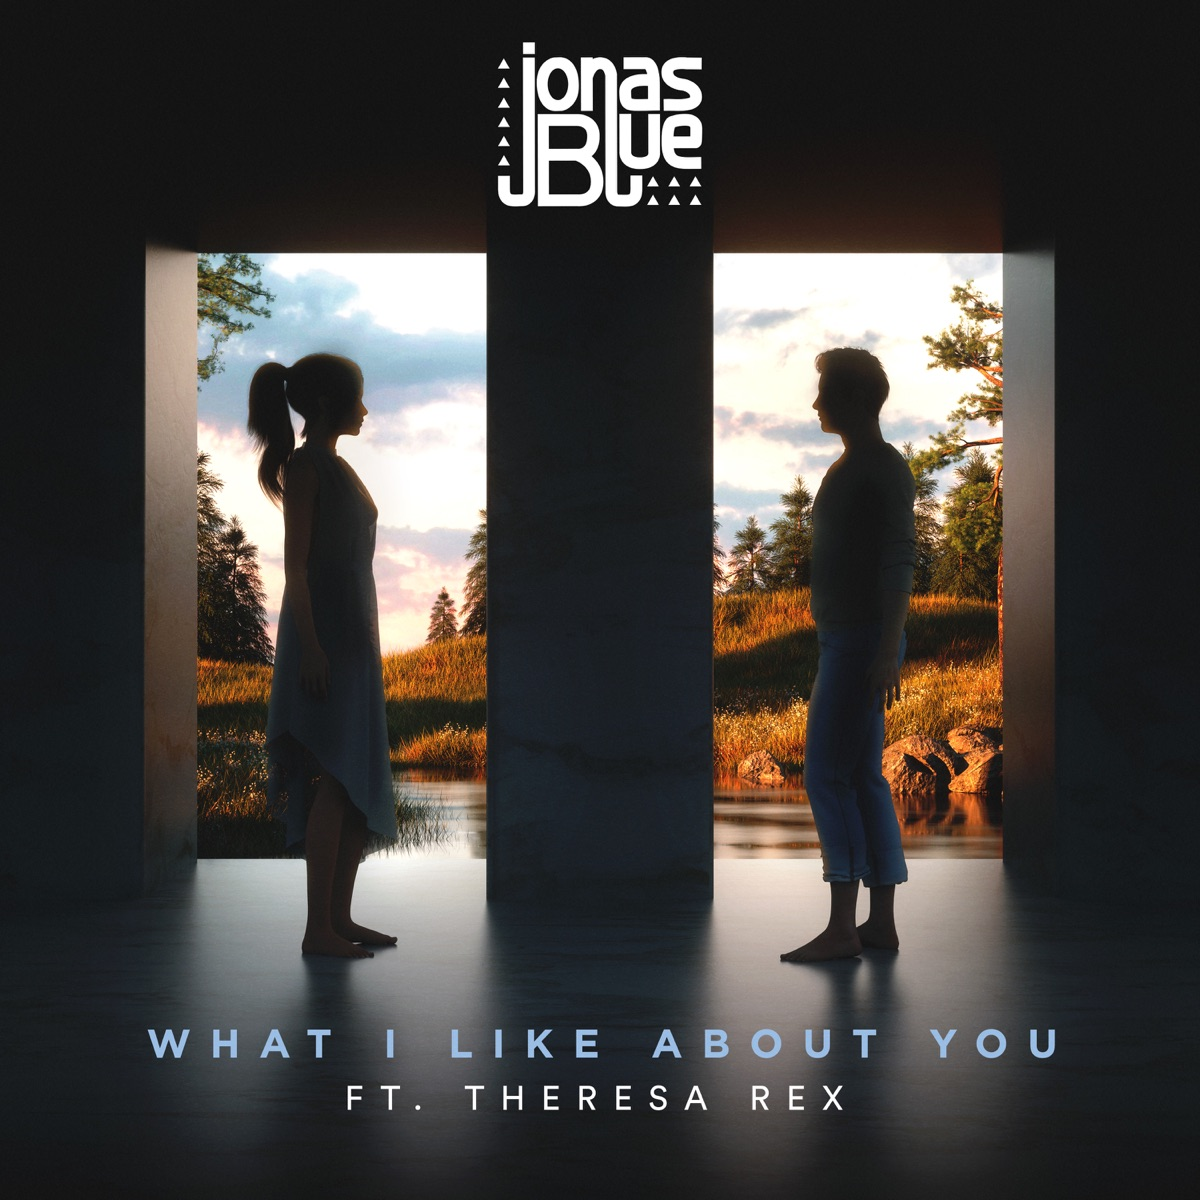 What I Like About You feat Theresa Rex - Single Jonas Blue CD cover